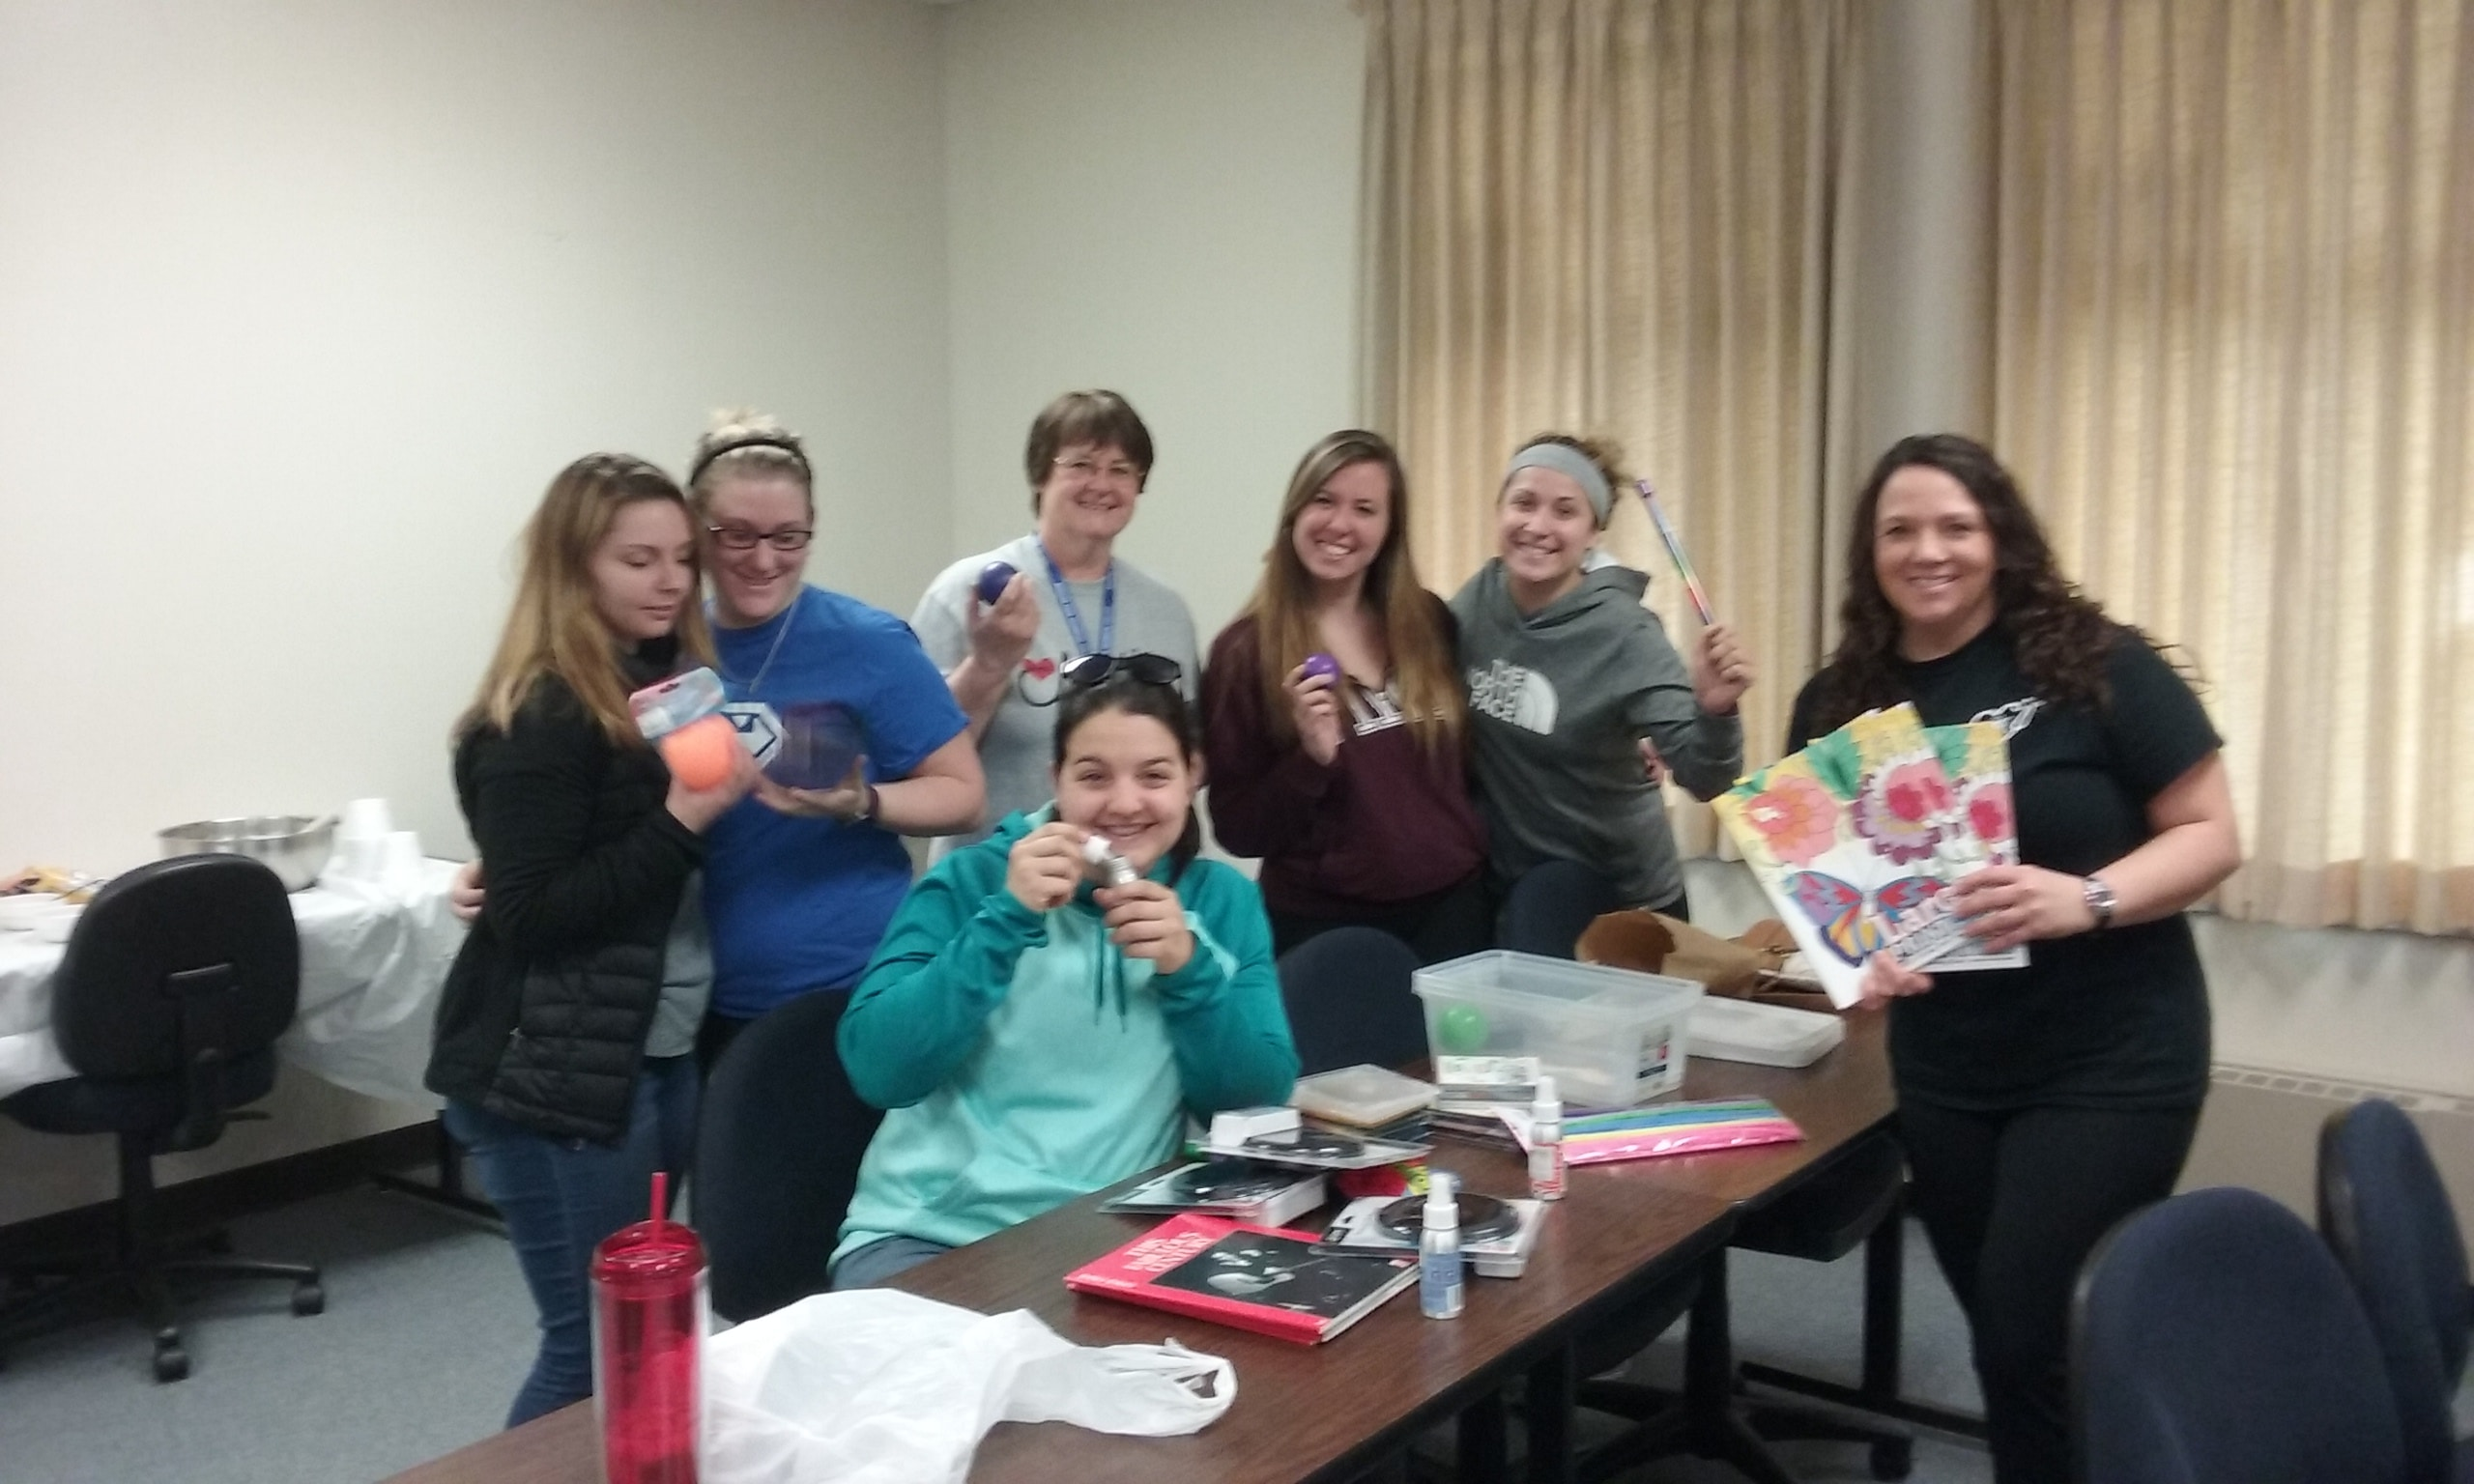 SNA members put together sensory boxes for nursing home residents.